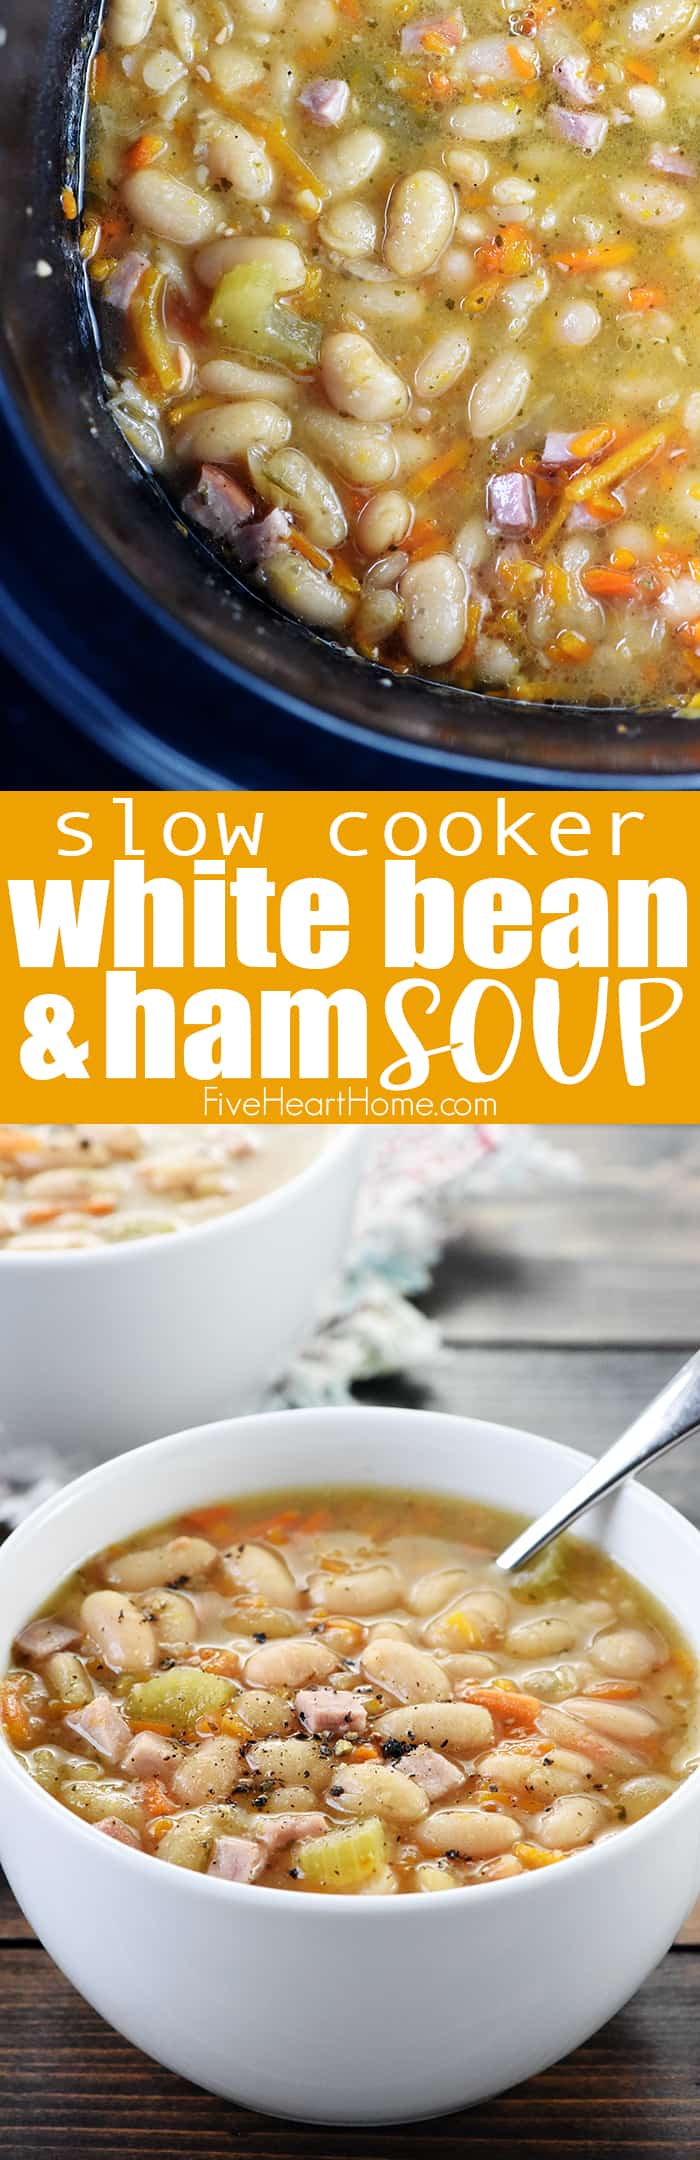 Slow Cooker White Bean & Ham Soup Collage with Text Overlay